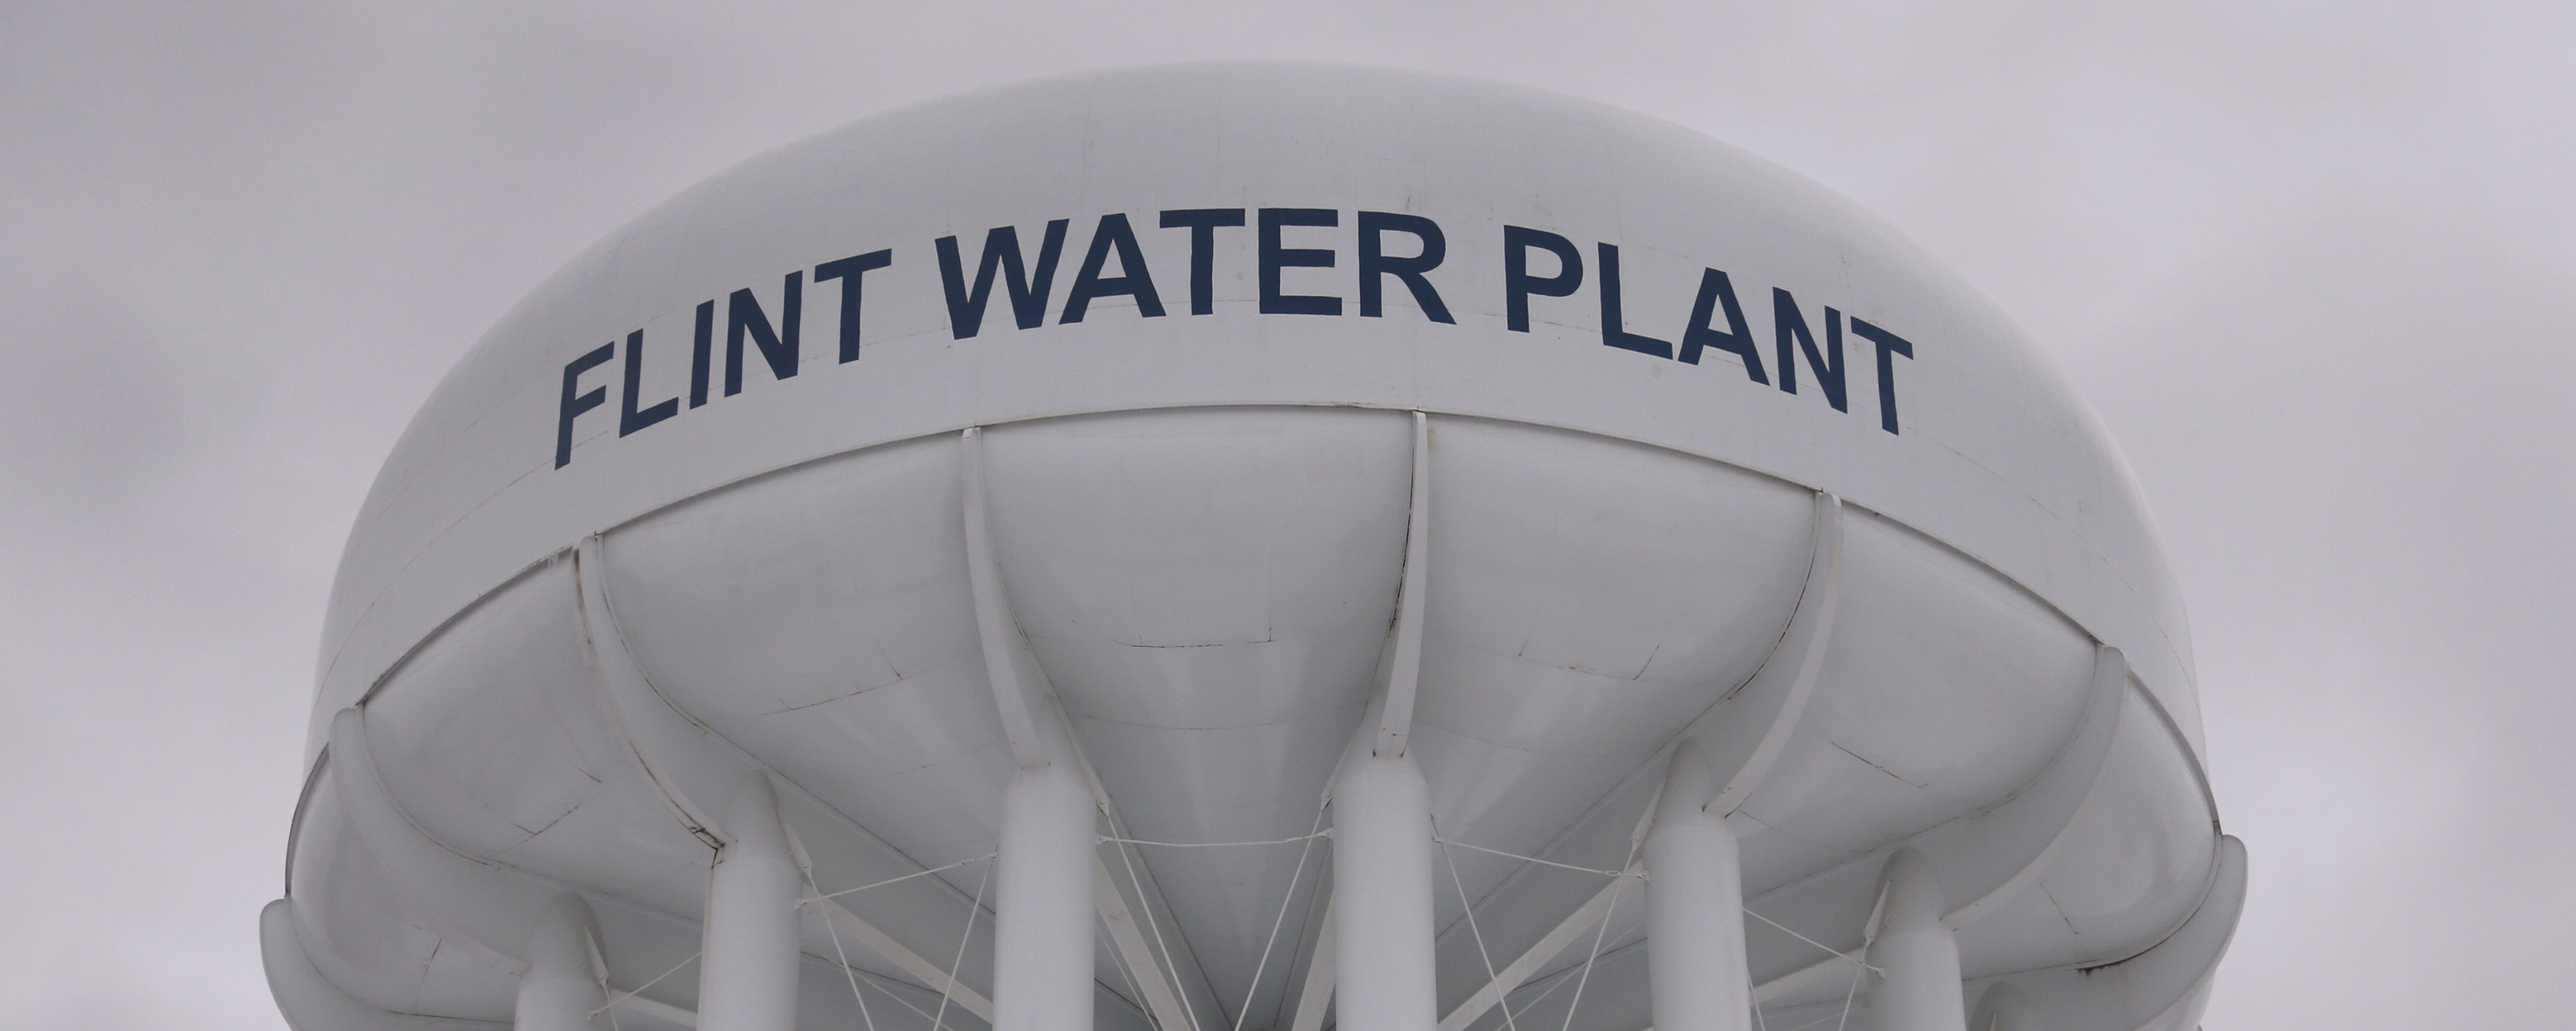 Flint Residents Take Clean Water Fight to Federal Court